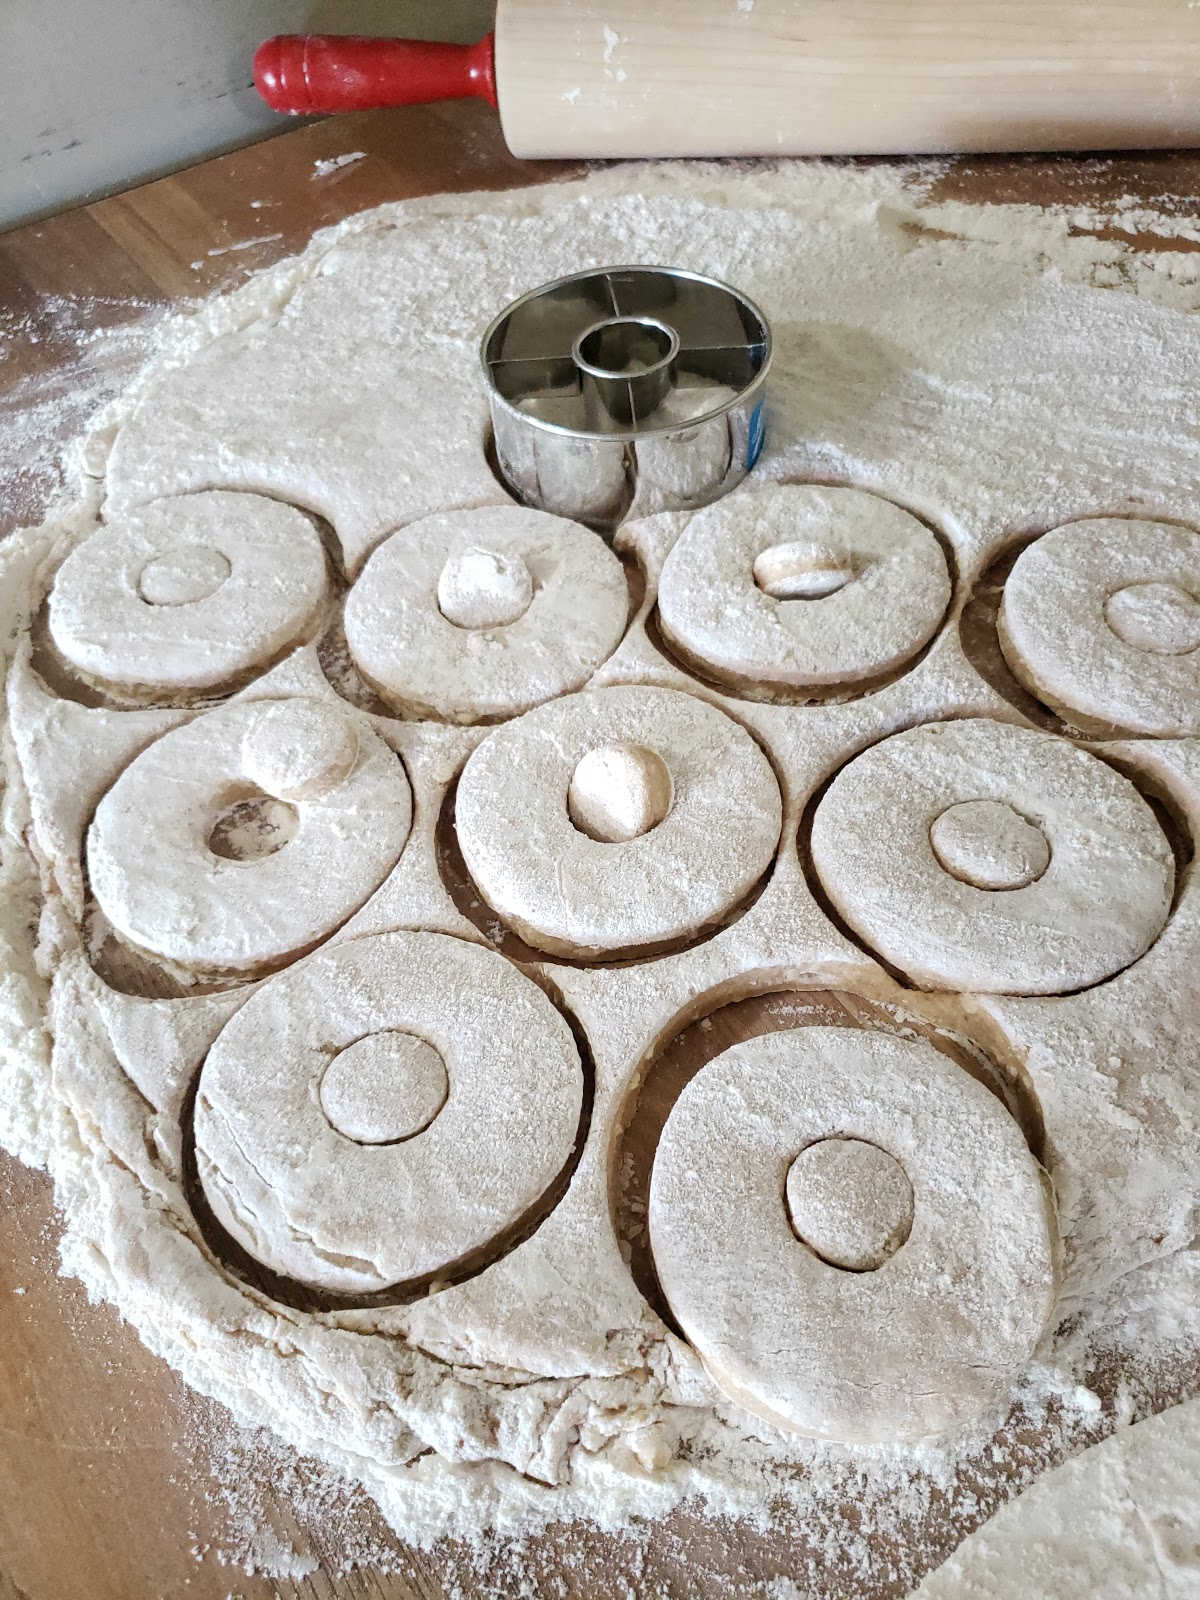 cutting donut dough with metal cutter on butcher block, red handled wooden rolling pin in background.